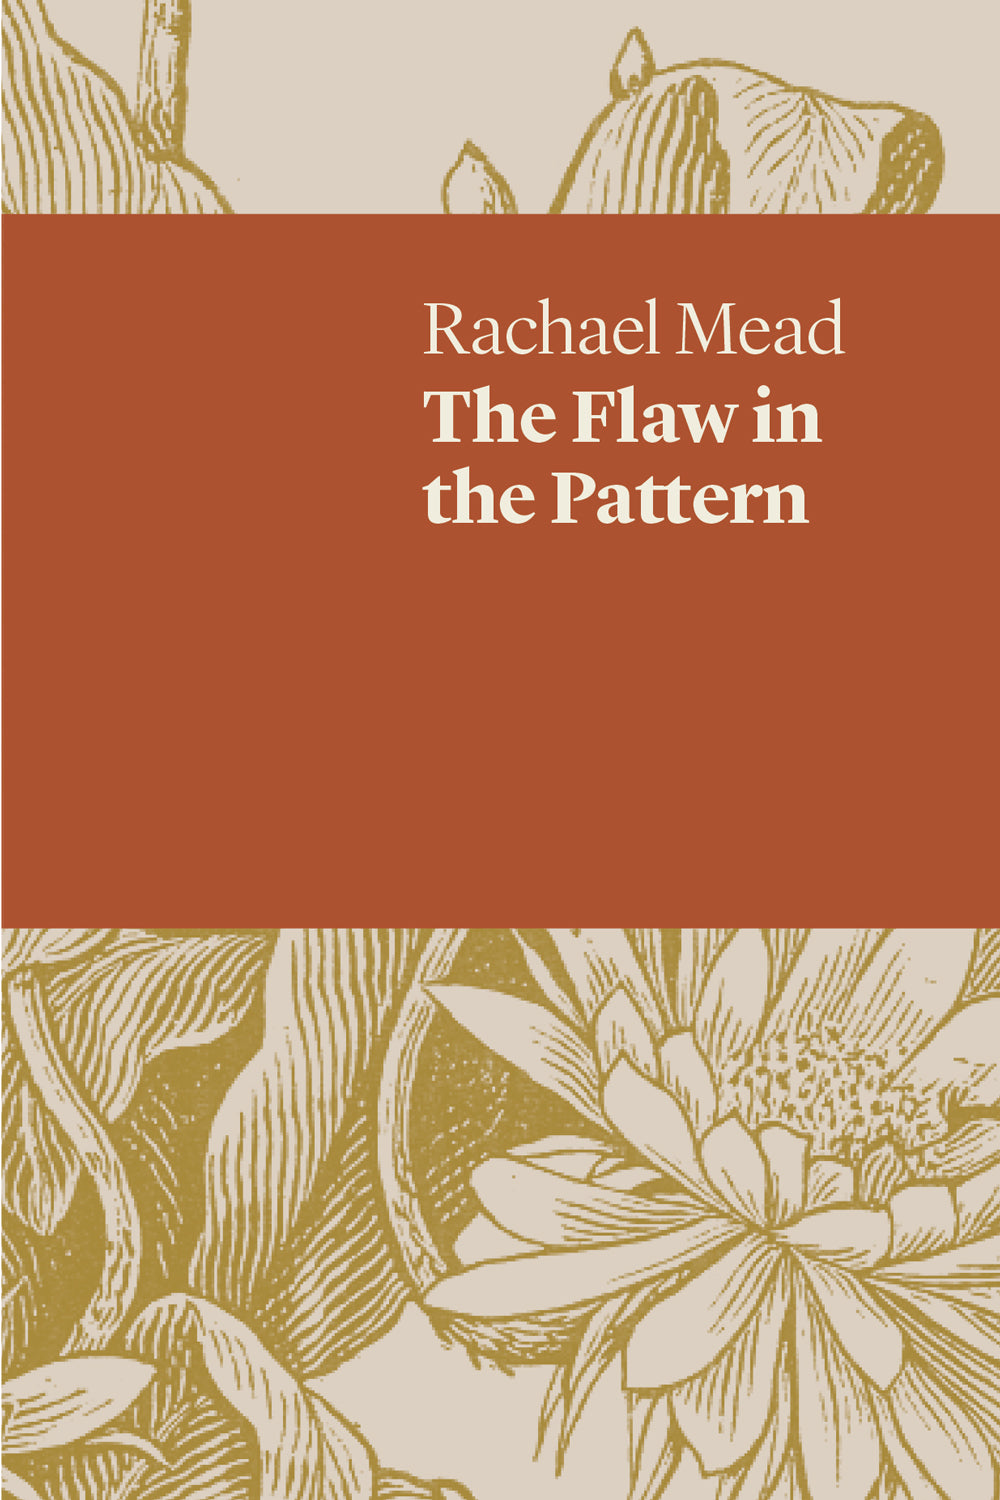 Image result for Rachael Mead, The Flaw in the Pattern,